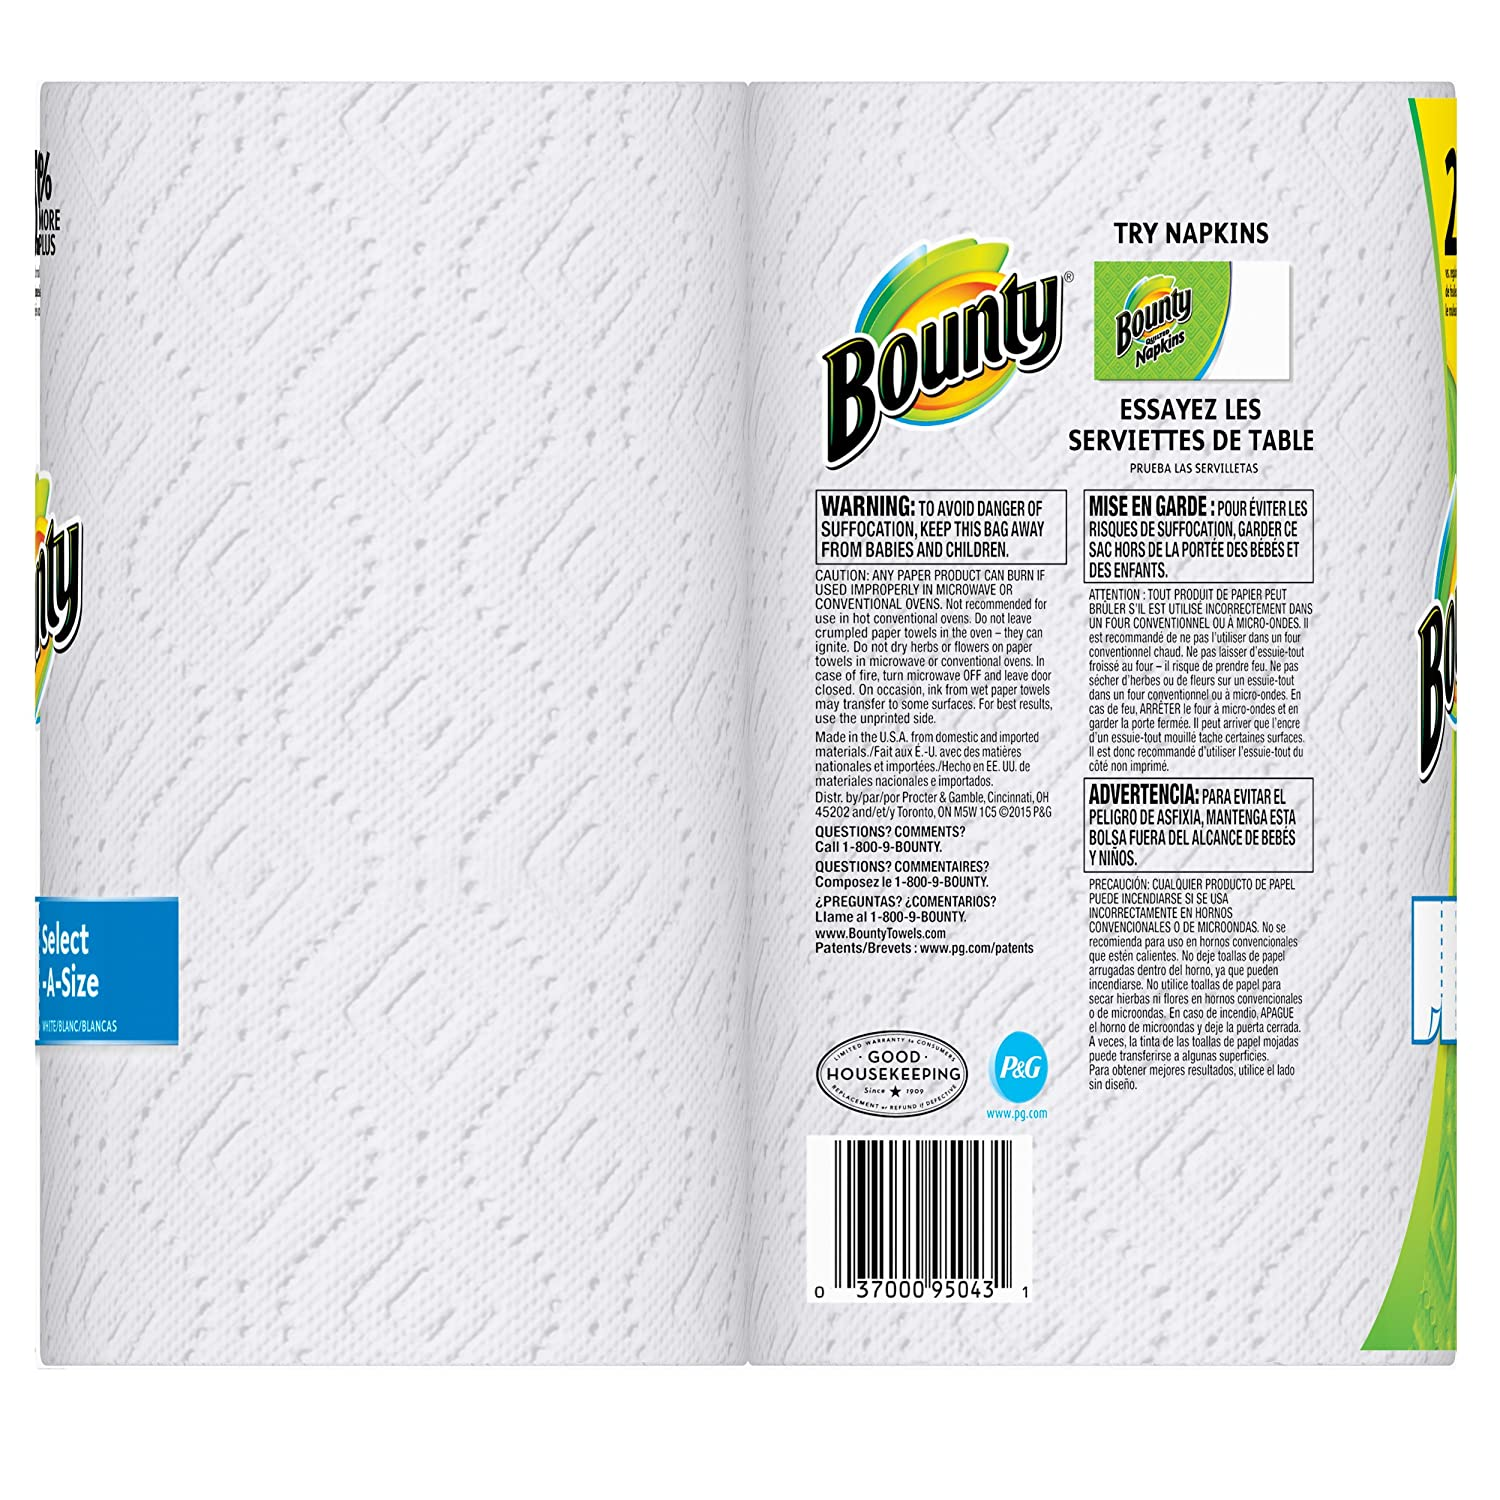 Amazon.com: Bounty Paper Towels, Select-a-Size, White, 2 Count: Health & Personal Care